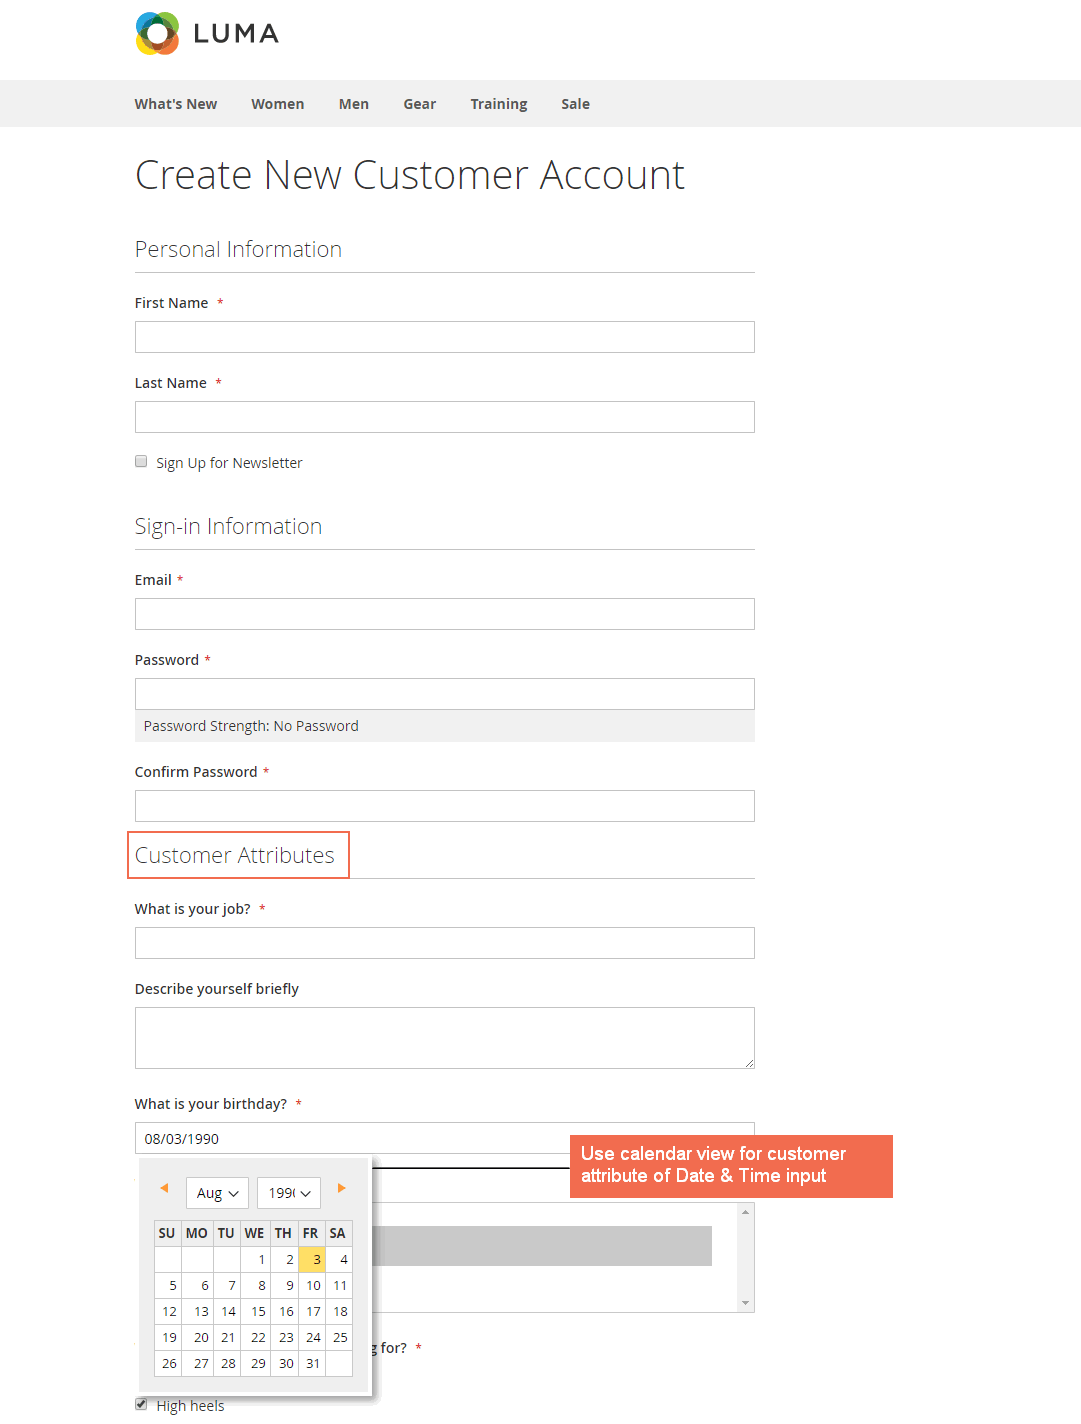 Magento 2 Registration form with additional customer attributes